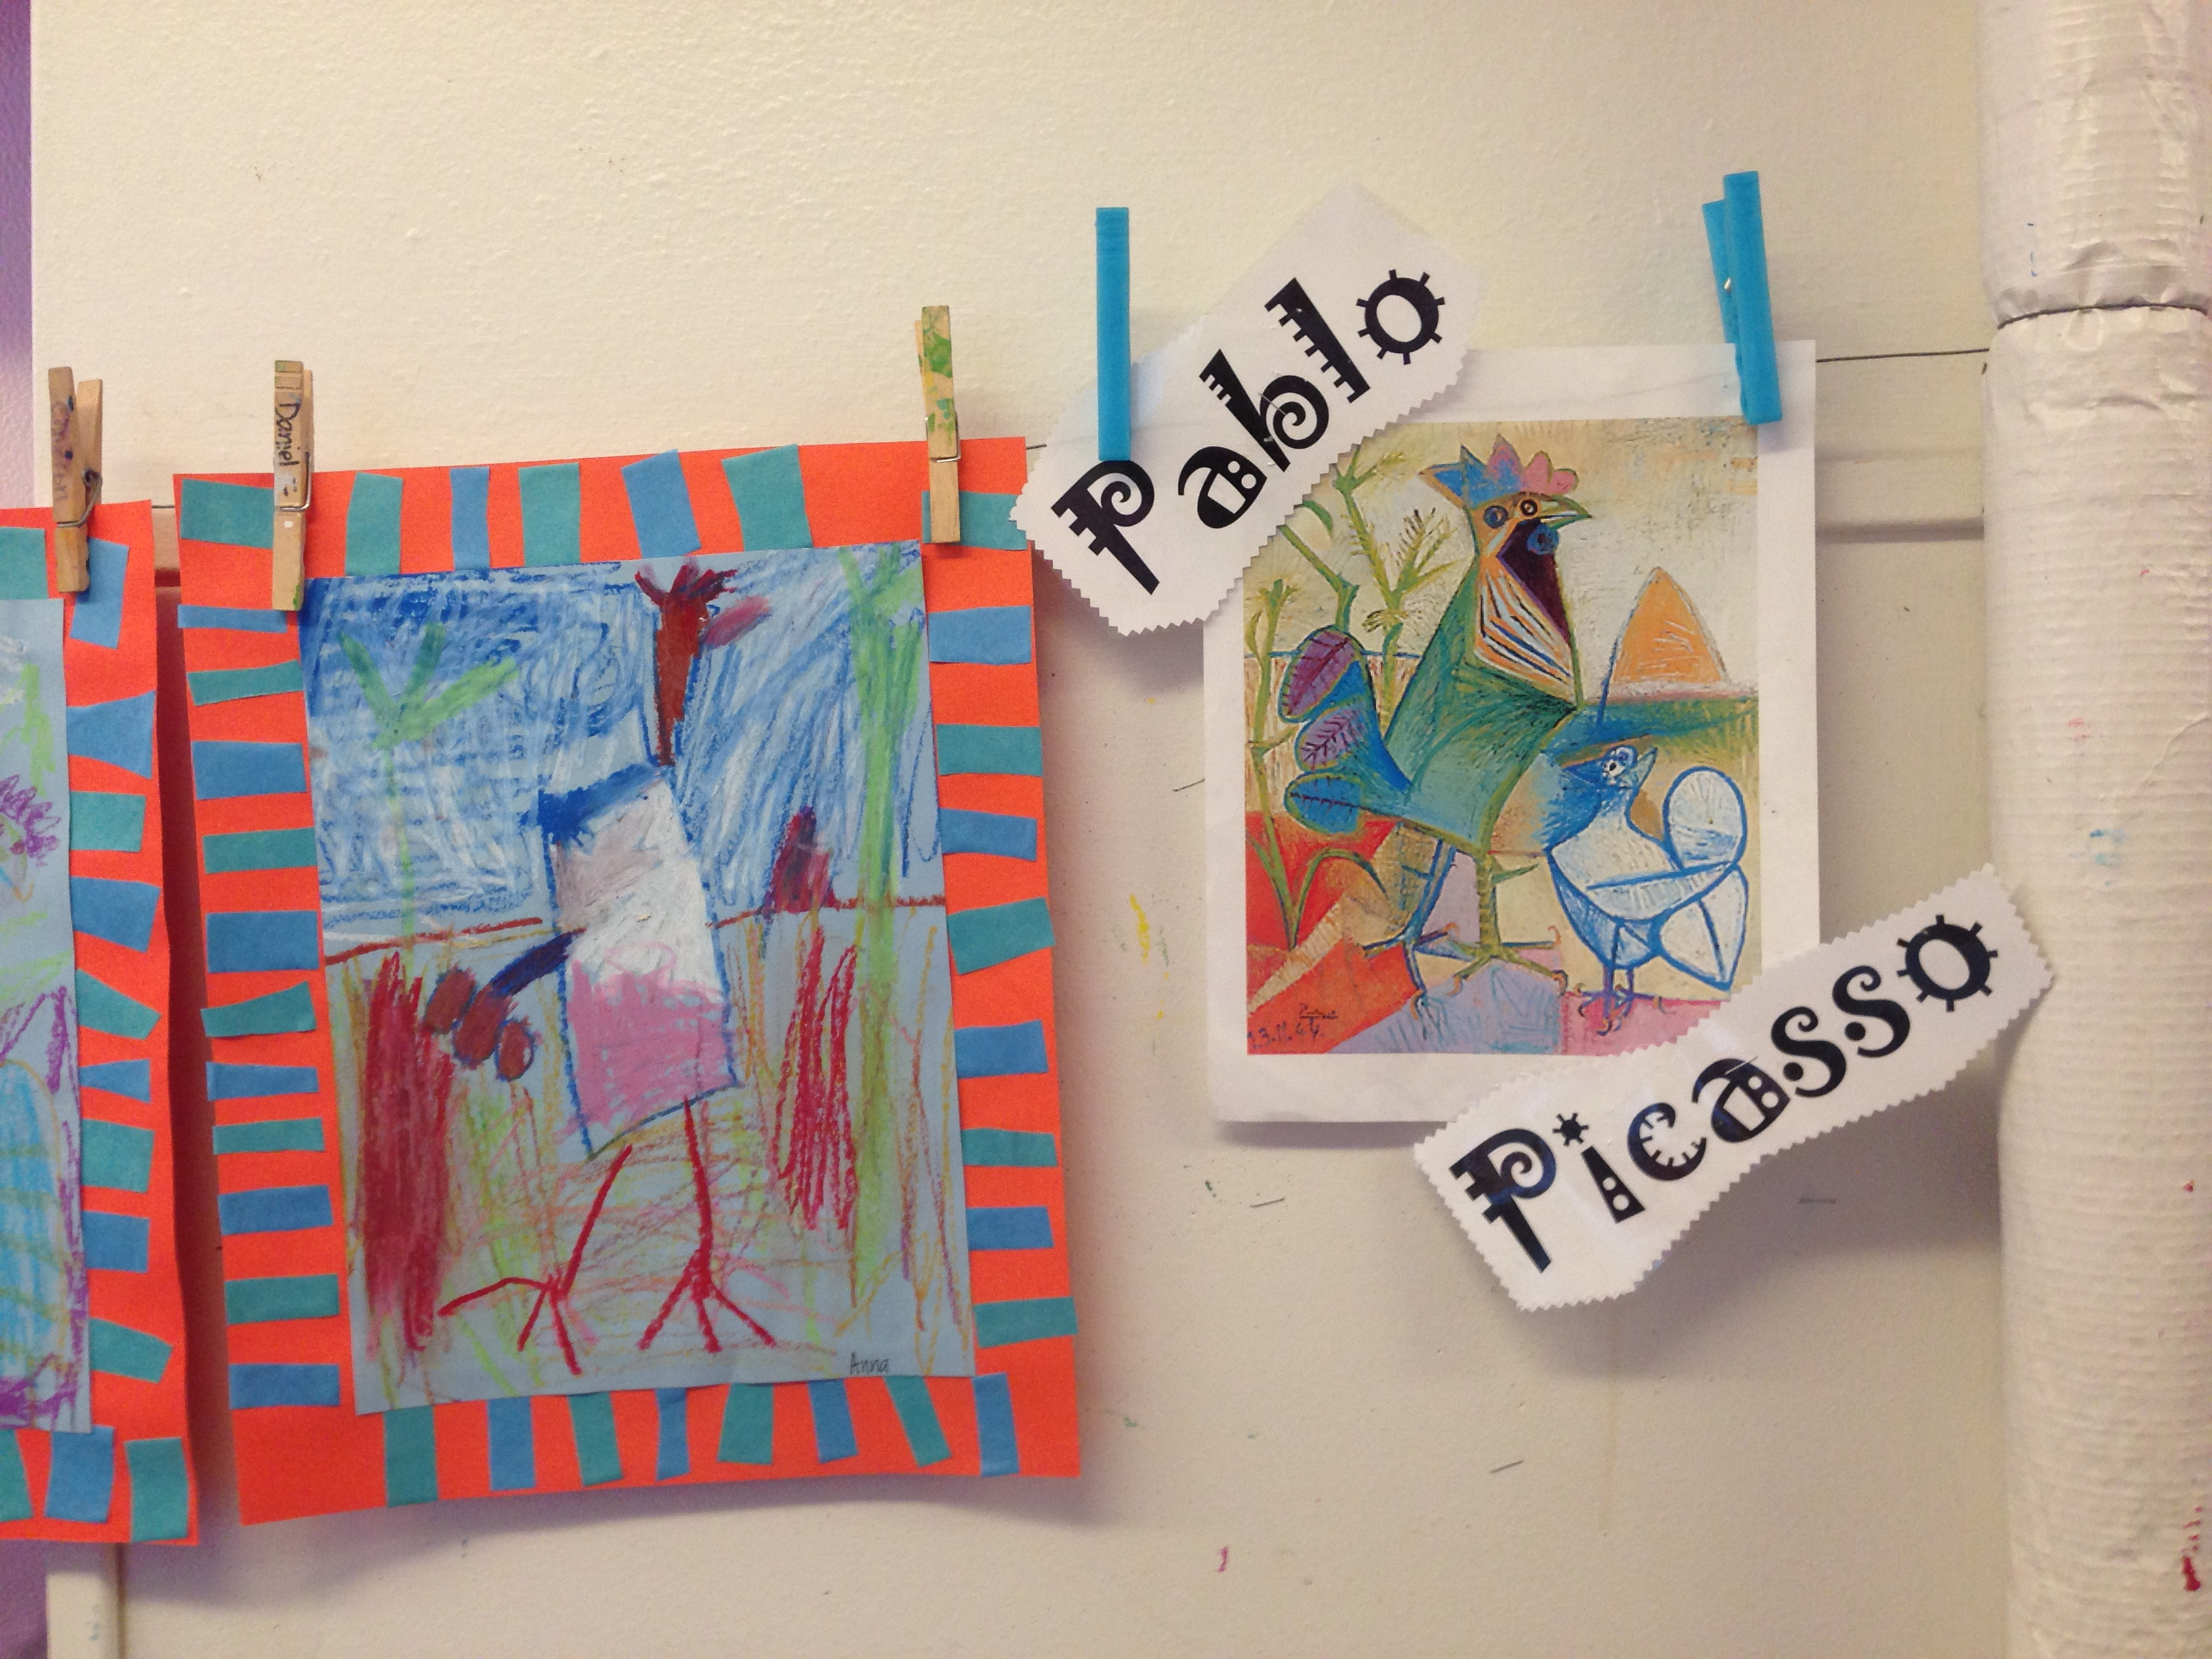 Picasso inspired artwork by students. Photo by Laci Coppins